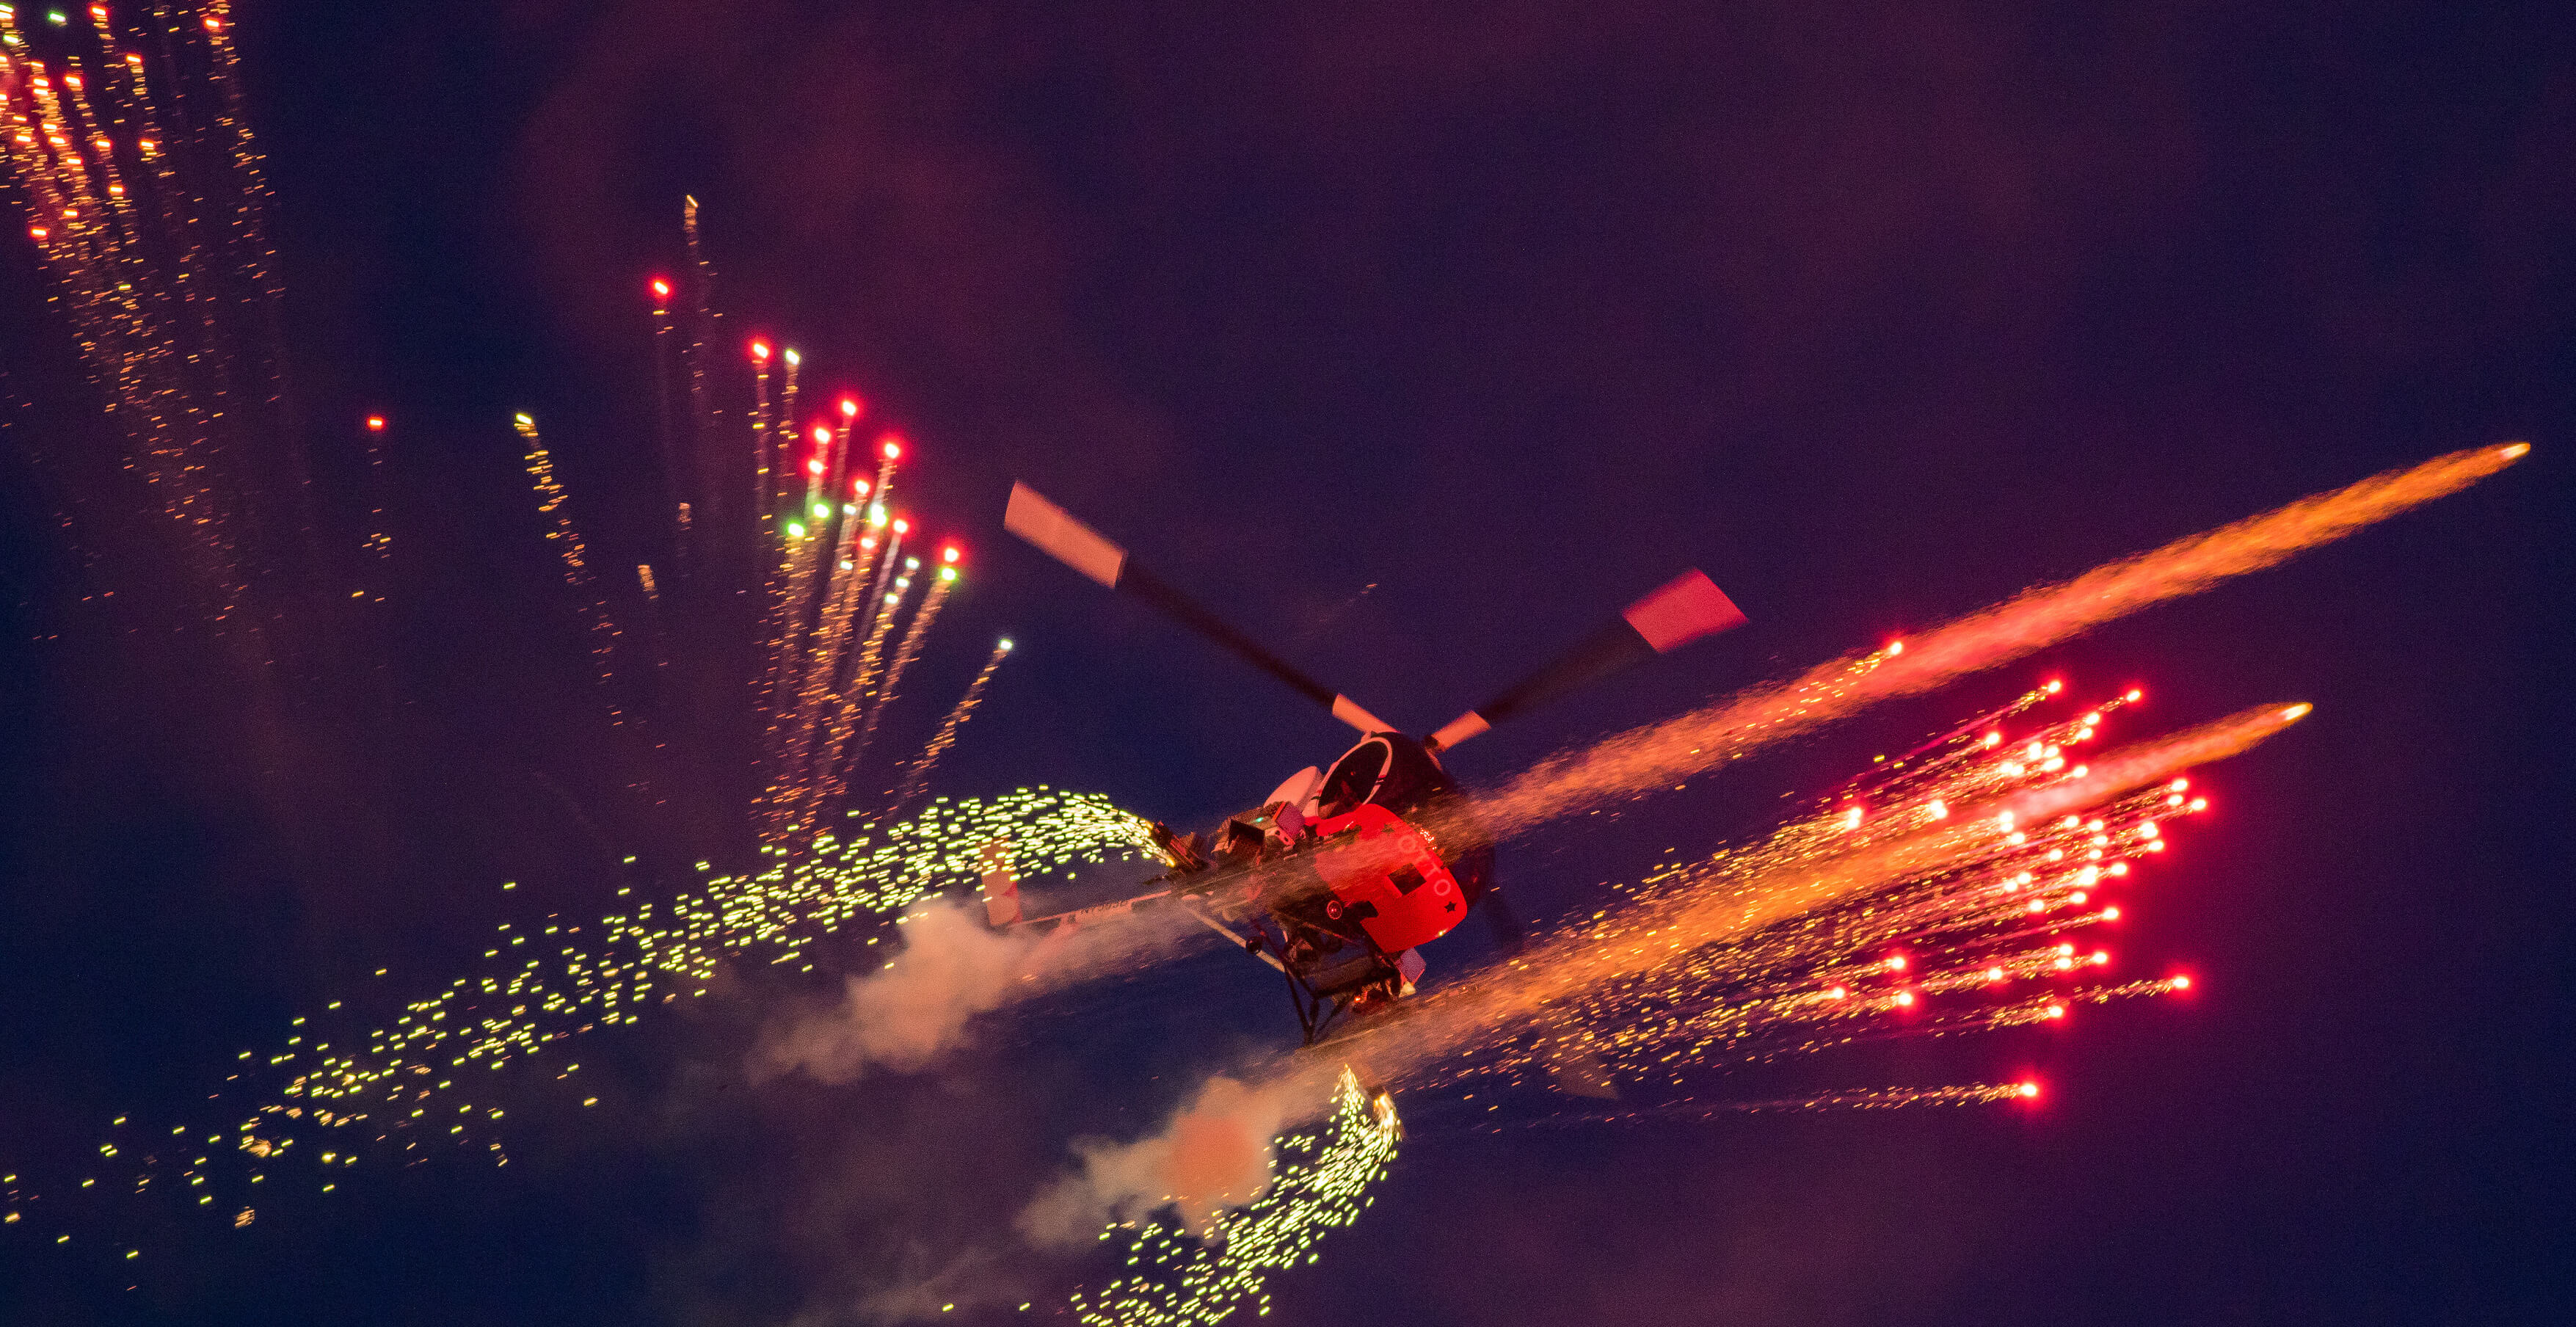 Helicopter during a night air display at Bournemouth Air Festival